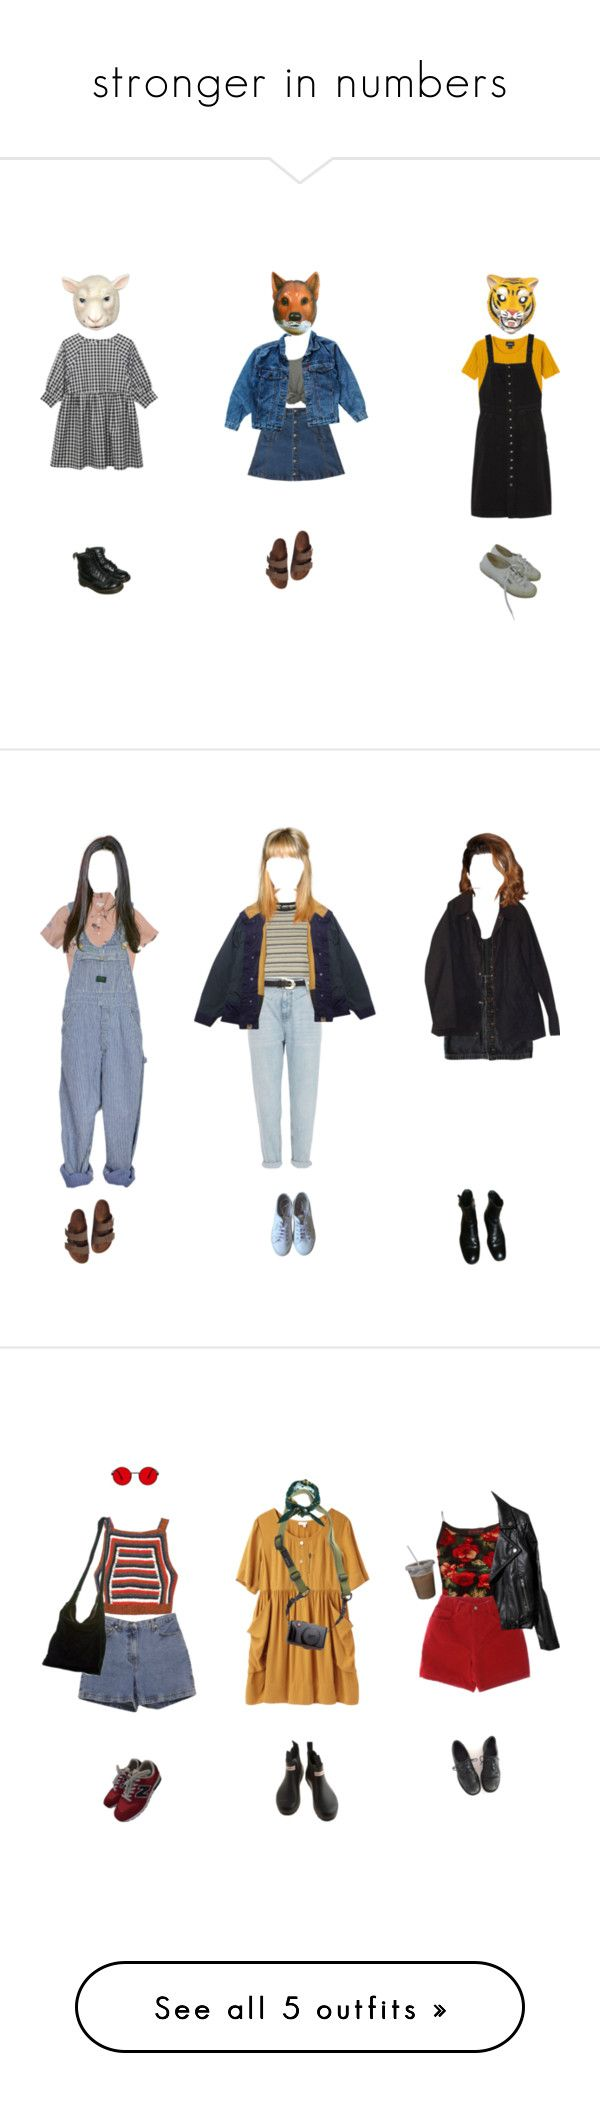 """""""stronger in numbers"""" by medi-ocre on Polyvore featuring Bebe, Levi's, Monki, M.i.h Jeans, Birkenstock, Superga, Dr. Martens, J.Crew, Topshop and River Island"""